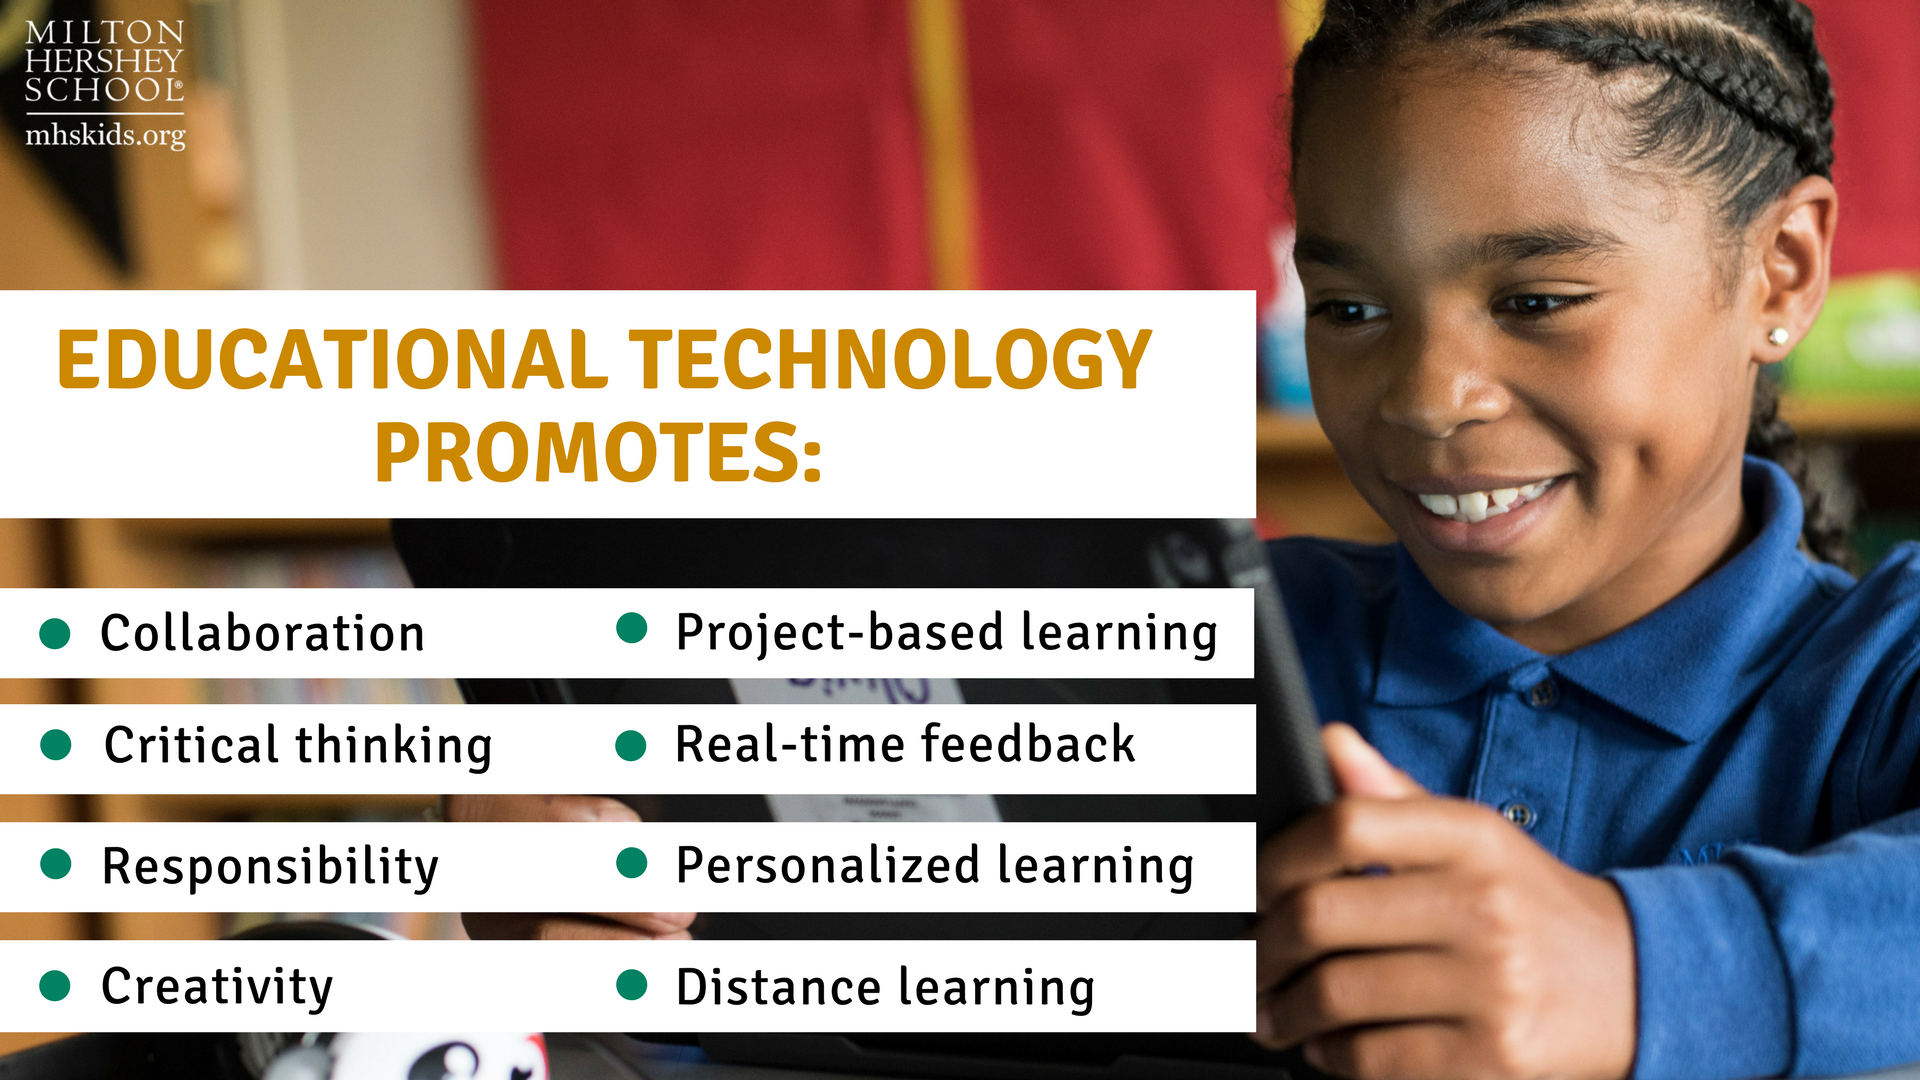 Educational technology promotes several 21st century skills